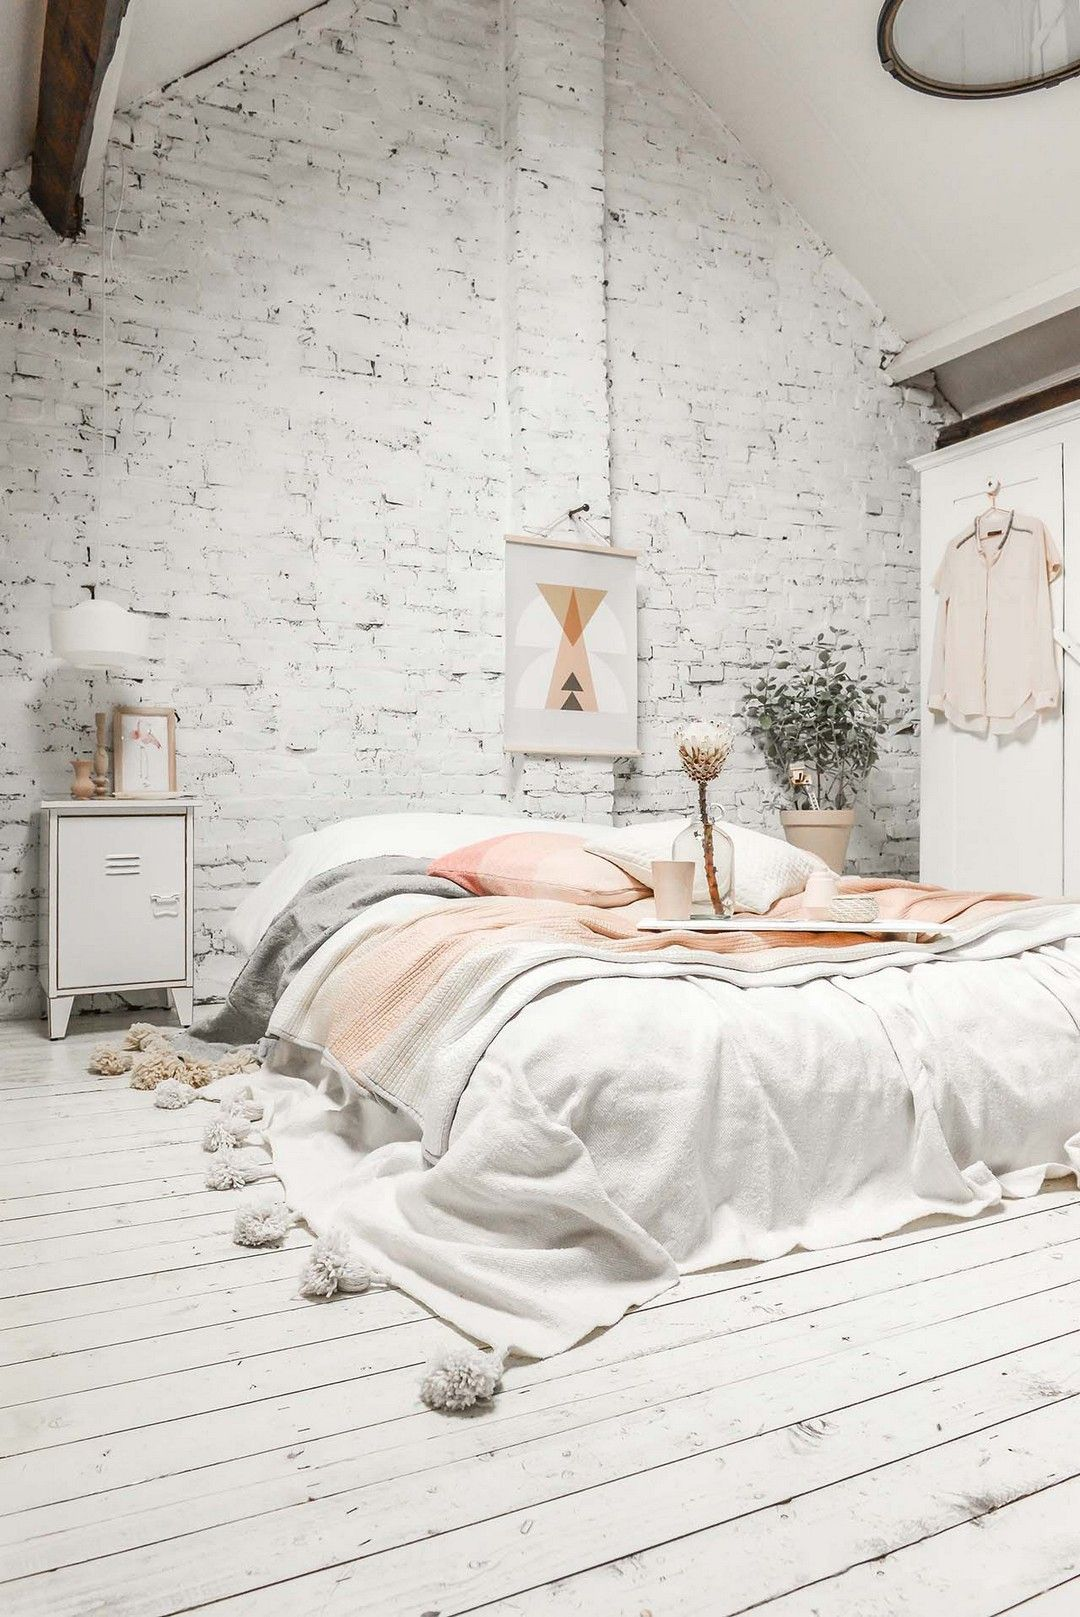 20 Modern And Stylish Rustic Scandinavian Bedroom Decor